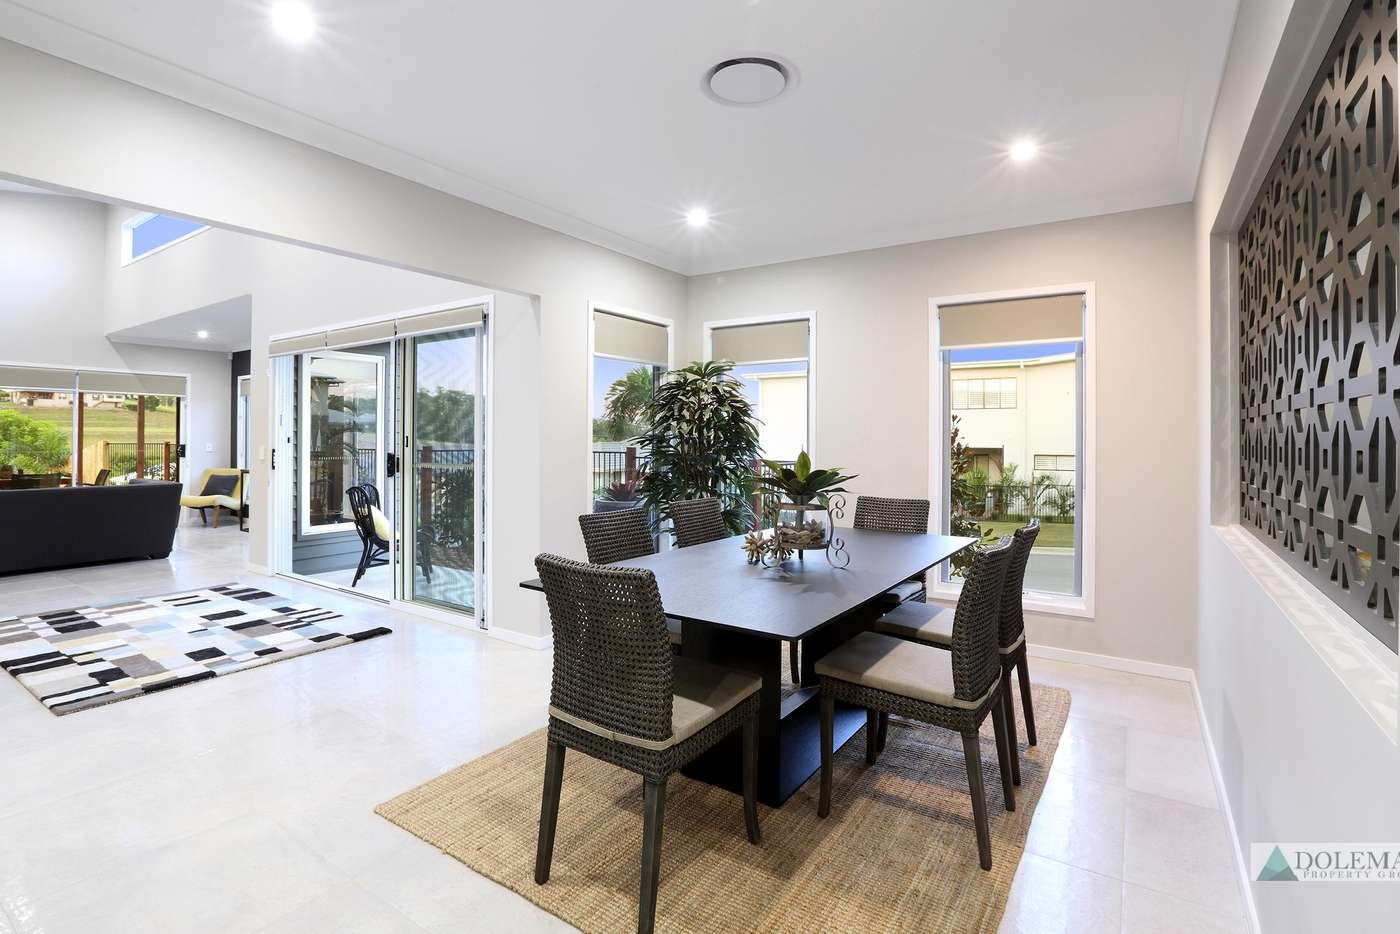 Sixth view of Homely house listing, 13 Elvire Street, Ormeau Hills QLD 4208